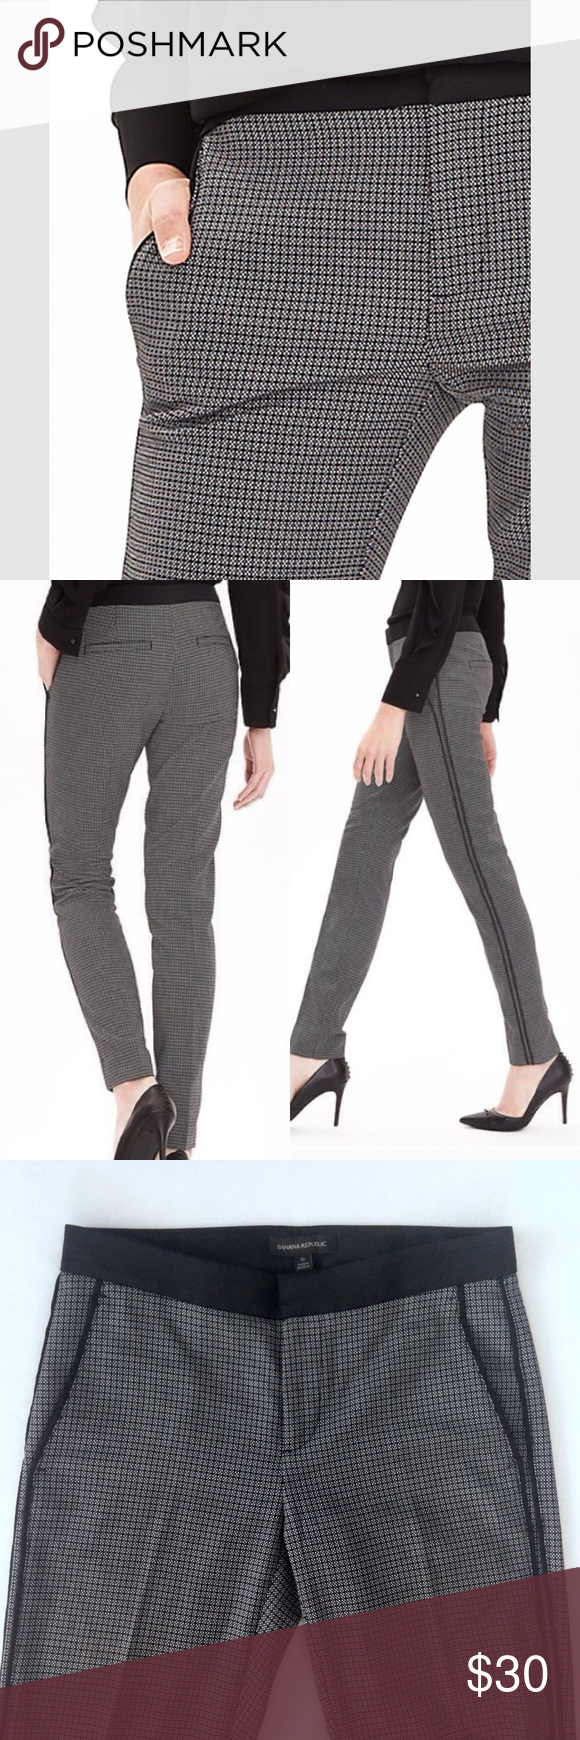 """Banana Republic Jacquard Slim Pants Banana Republic Jacquard Slim pants. Satin-like fabric at waistband and in piping down both legs. Really cute and a nice step up from basic black. Excellent condition - no flaws. Flat lay measurements: 15"""" waist, 28 1/2"""" inseam. Banana Republic Pants"""